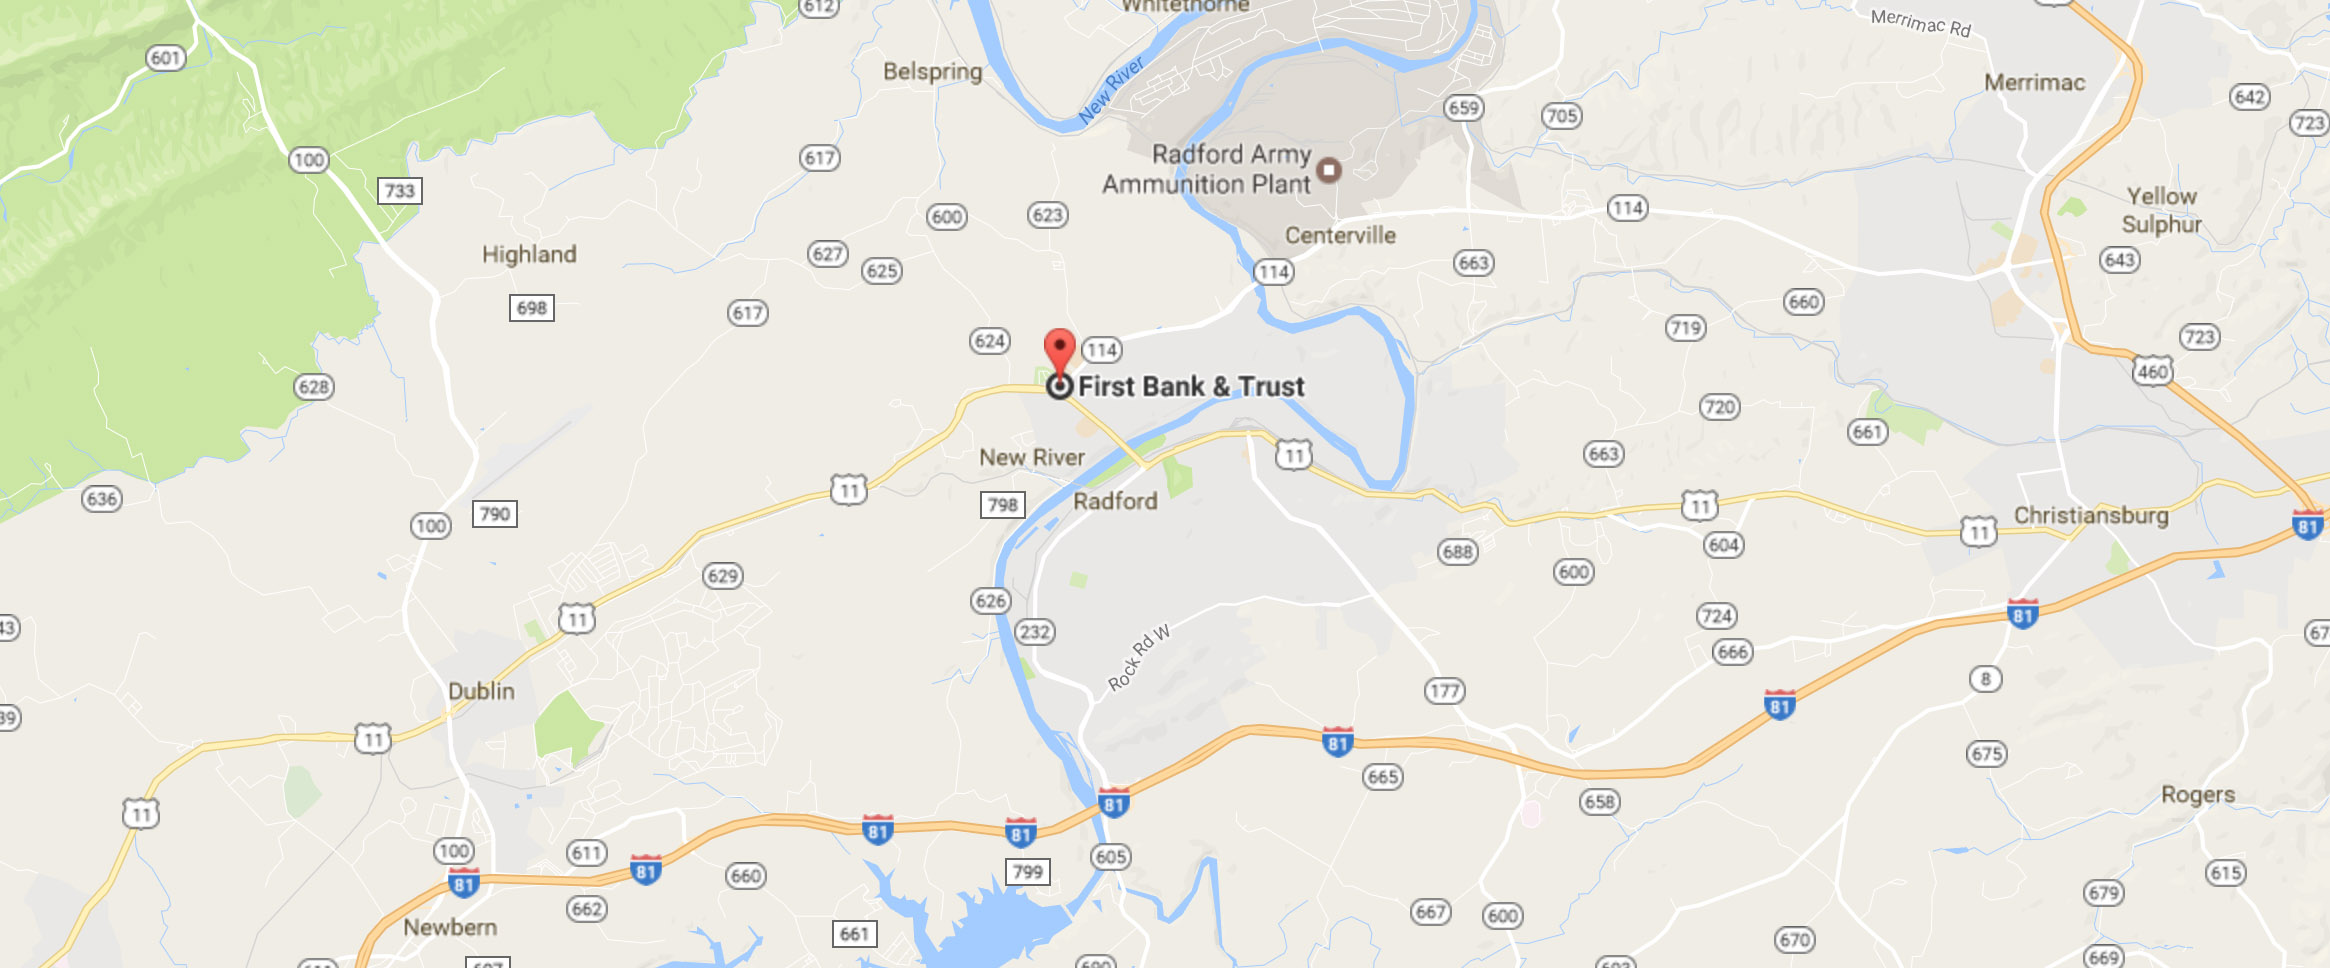 Map of First Bank and Trust location in Fairlawn, Virginia